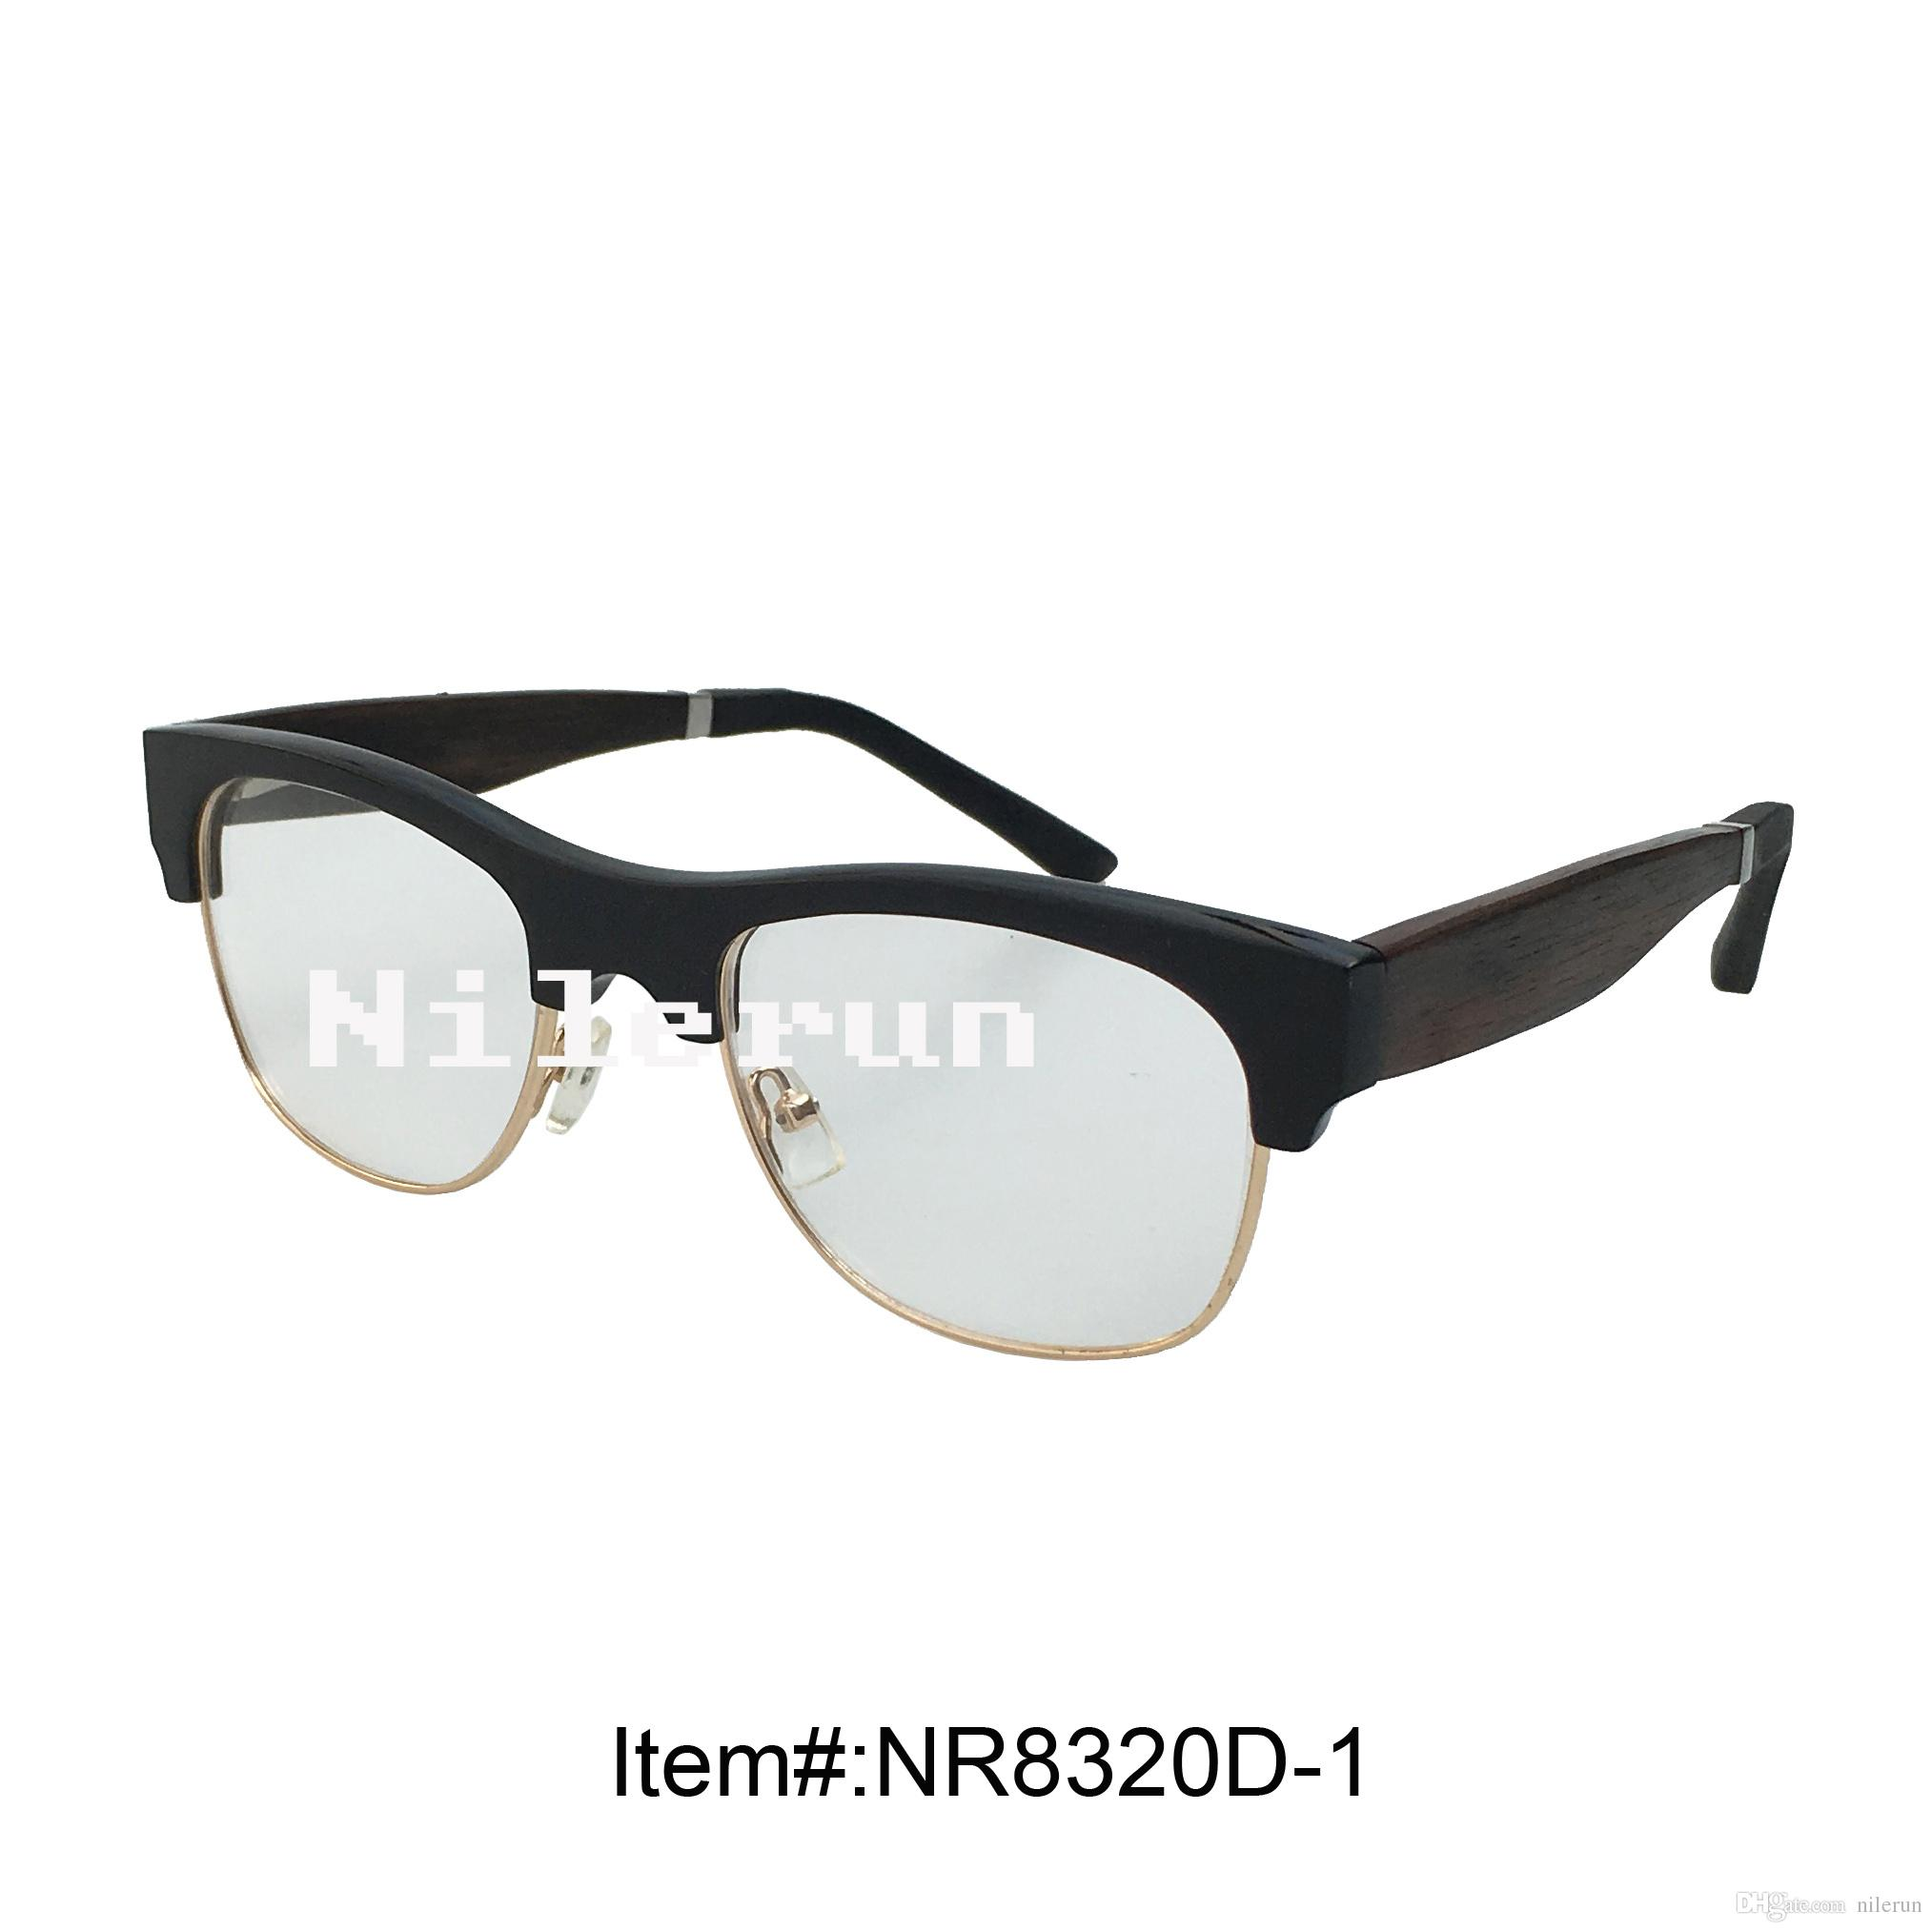 3899c4132f42c Hot Selling Gold Metal Rim Buffalo Horn Half Frame Optical Glasses With  Wood Temples And Soft Silica Gel Temple Tips Eye Glass Frame Frameless  Eyeglasses ...